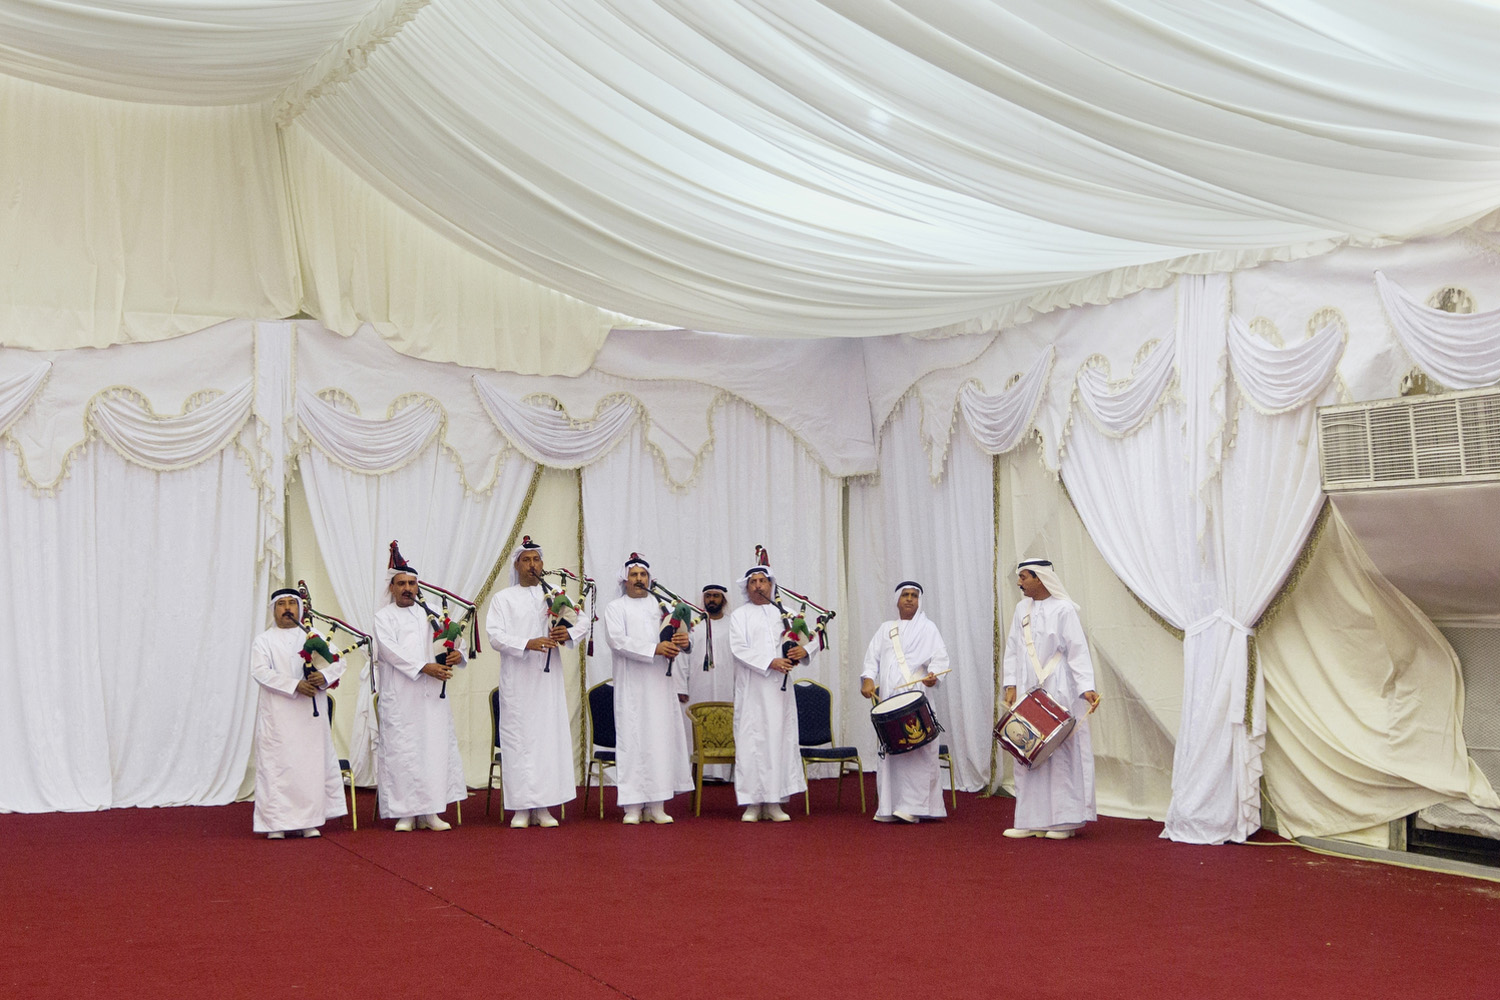 A UAE military band plays bagpipes and drums for the arrival of VIPs during a dinner reception in Abu Dhabi.